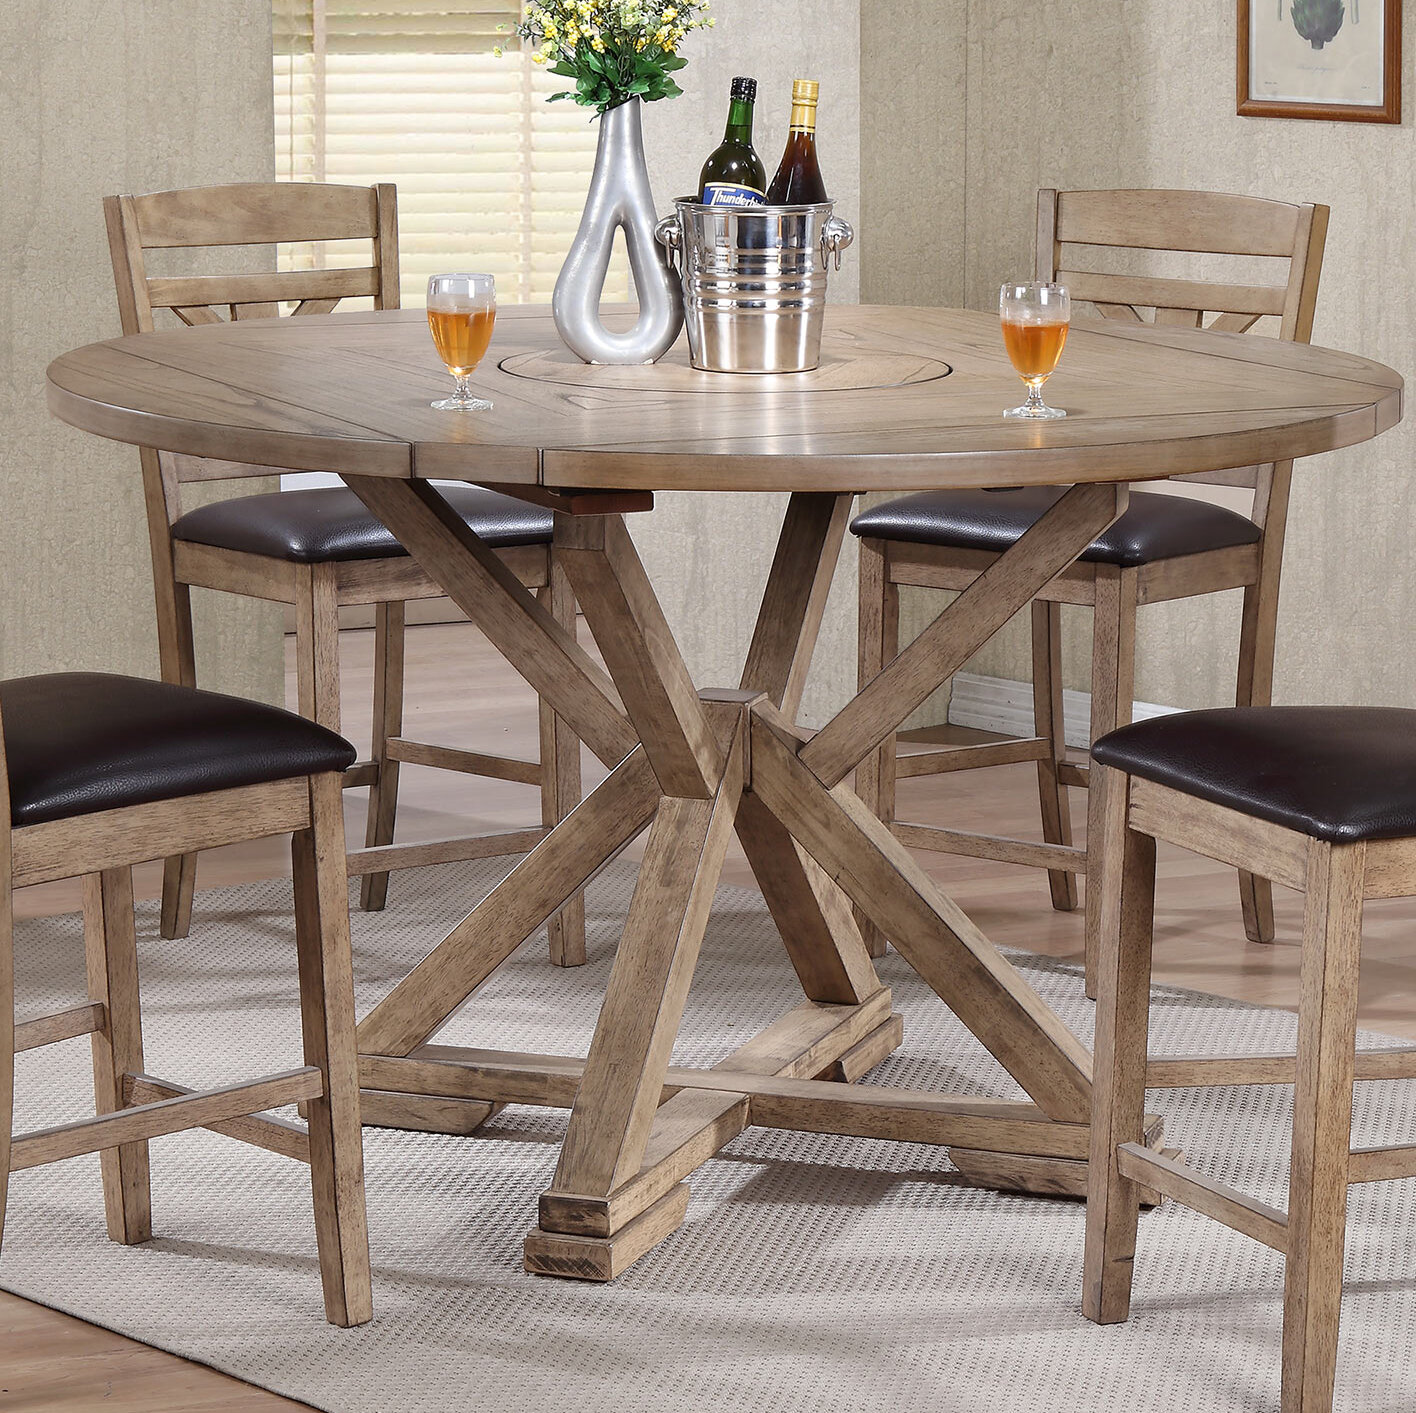 Drop Leaf Gray Wood Kitchen Dining Tables You Ll Love In 2021 Wayfair